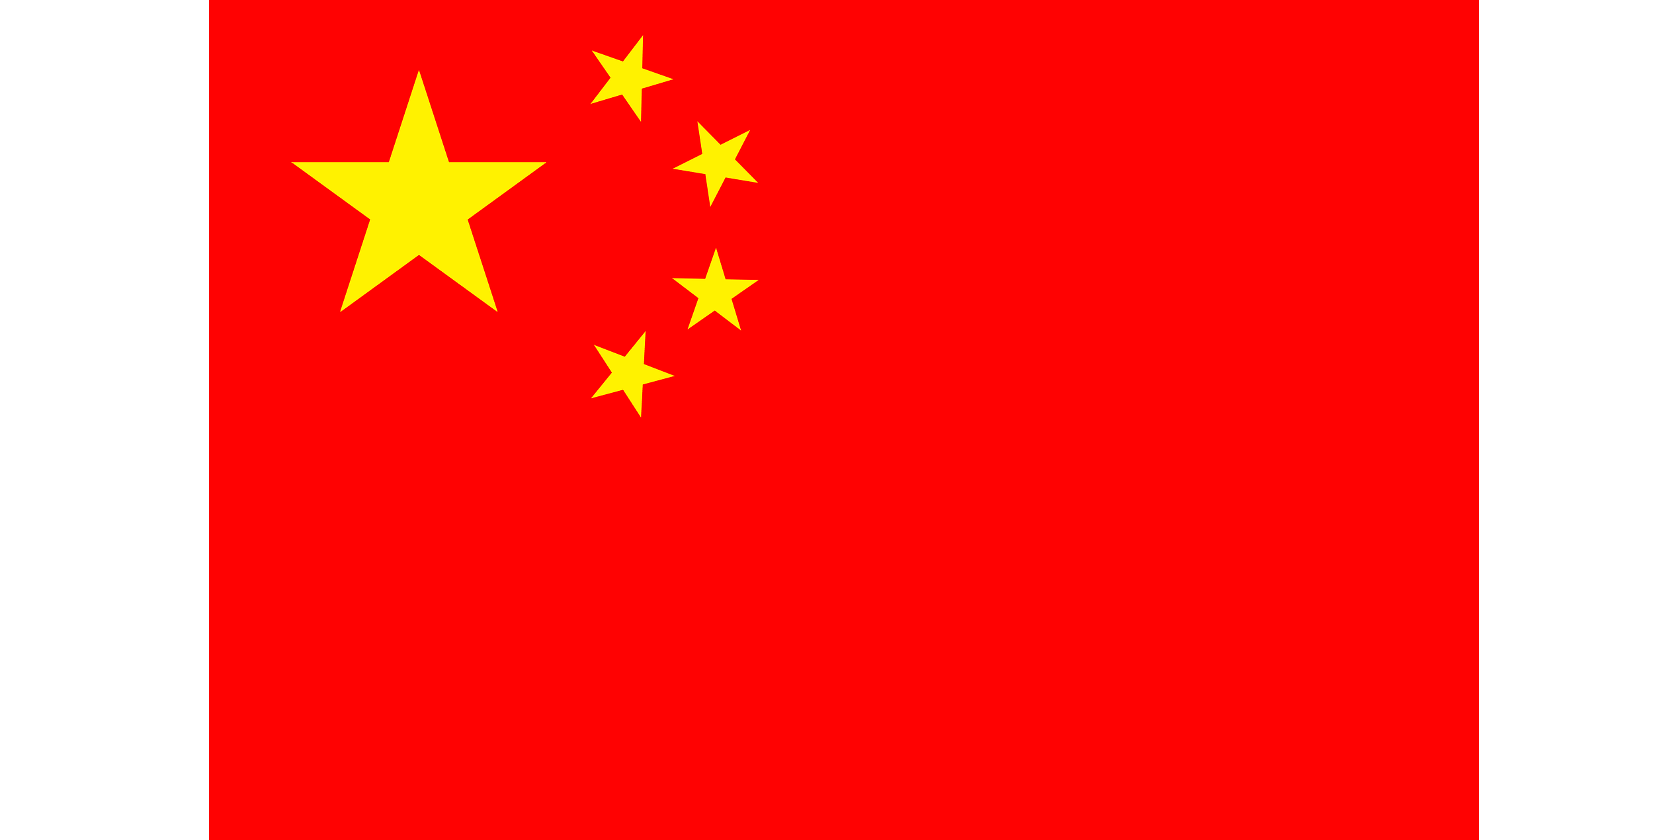 China Aims to Grow Solid-State Lighting Into $150B Market by 2020